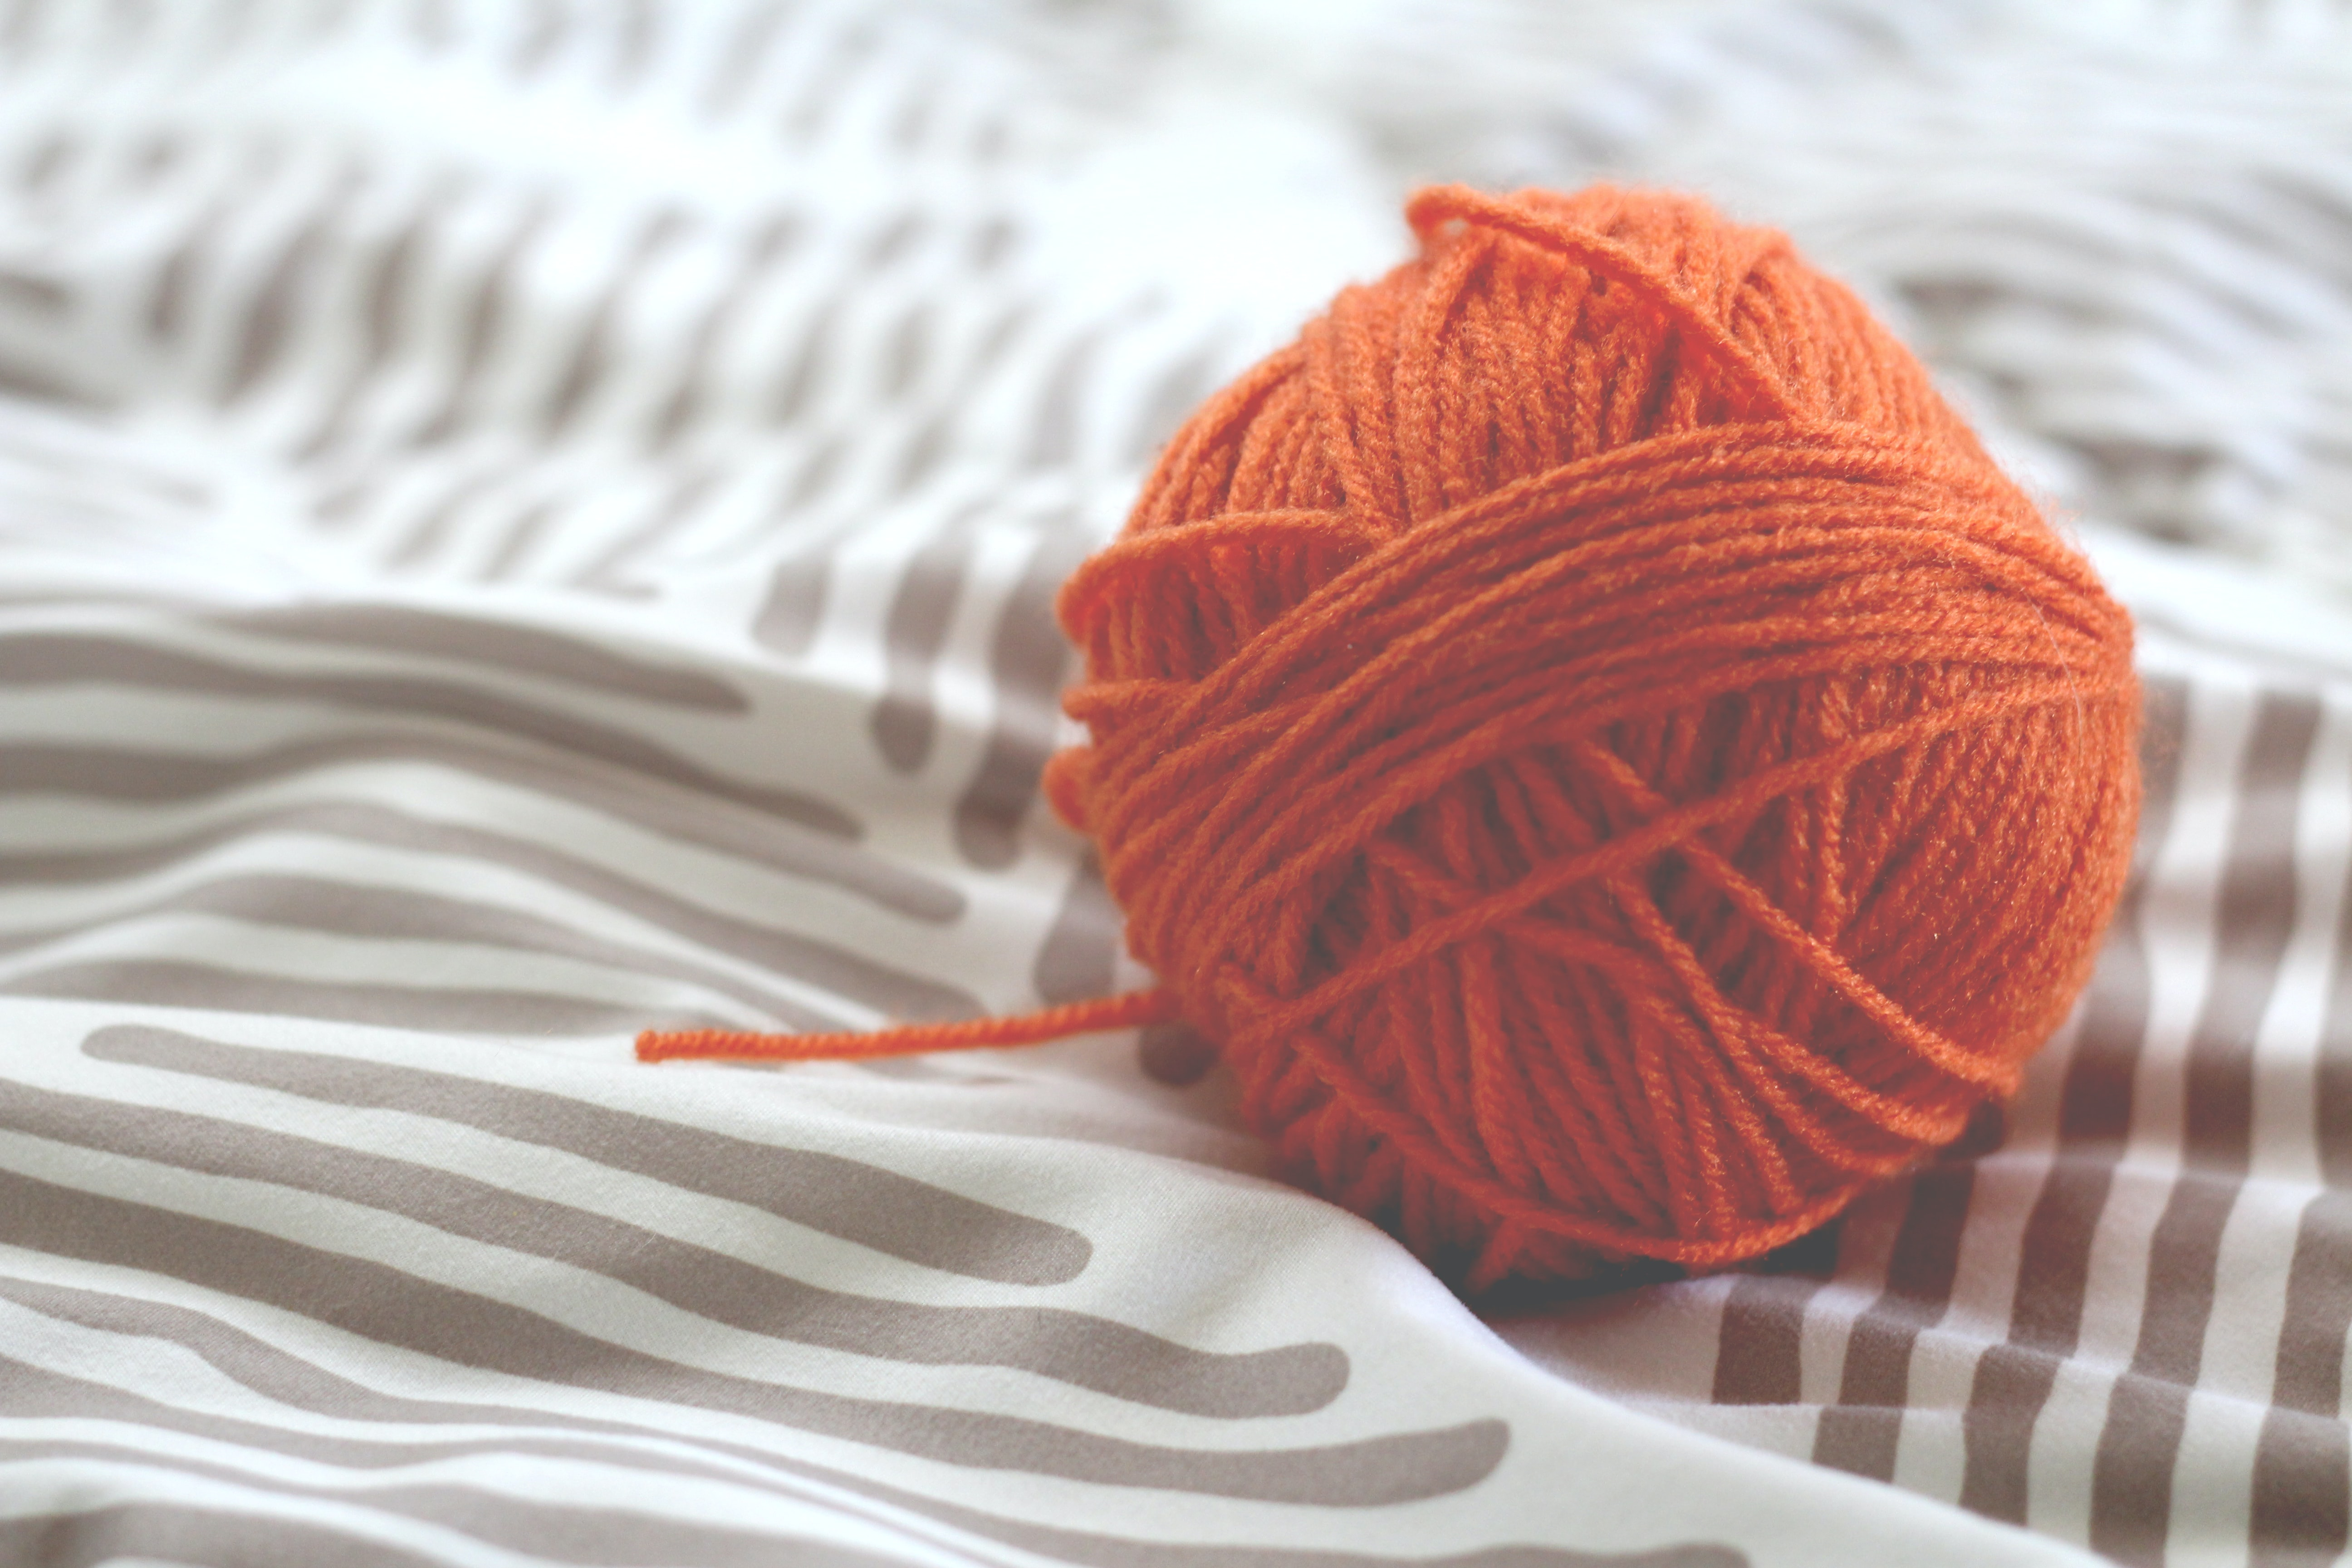 orange yarn ball on white and gray pad